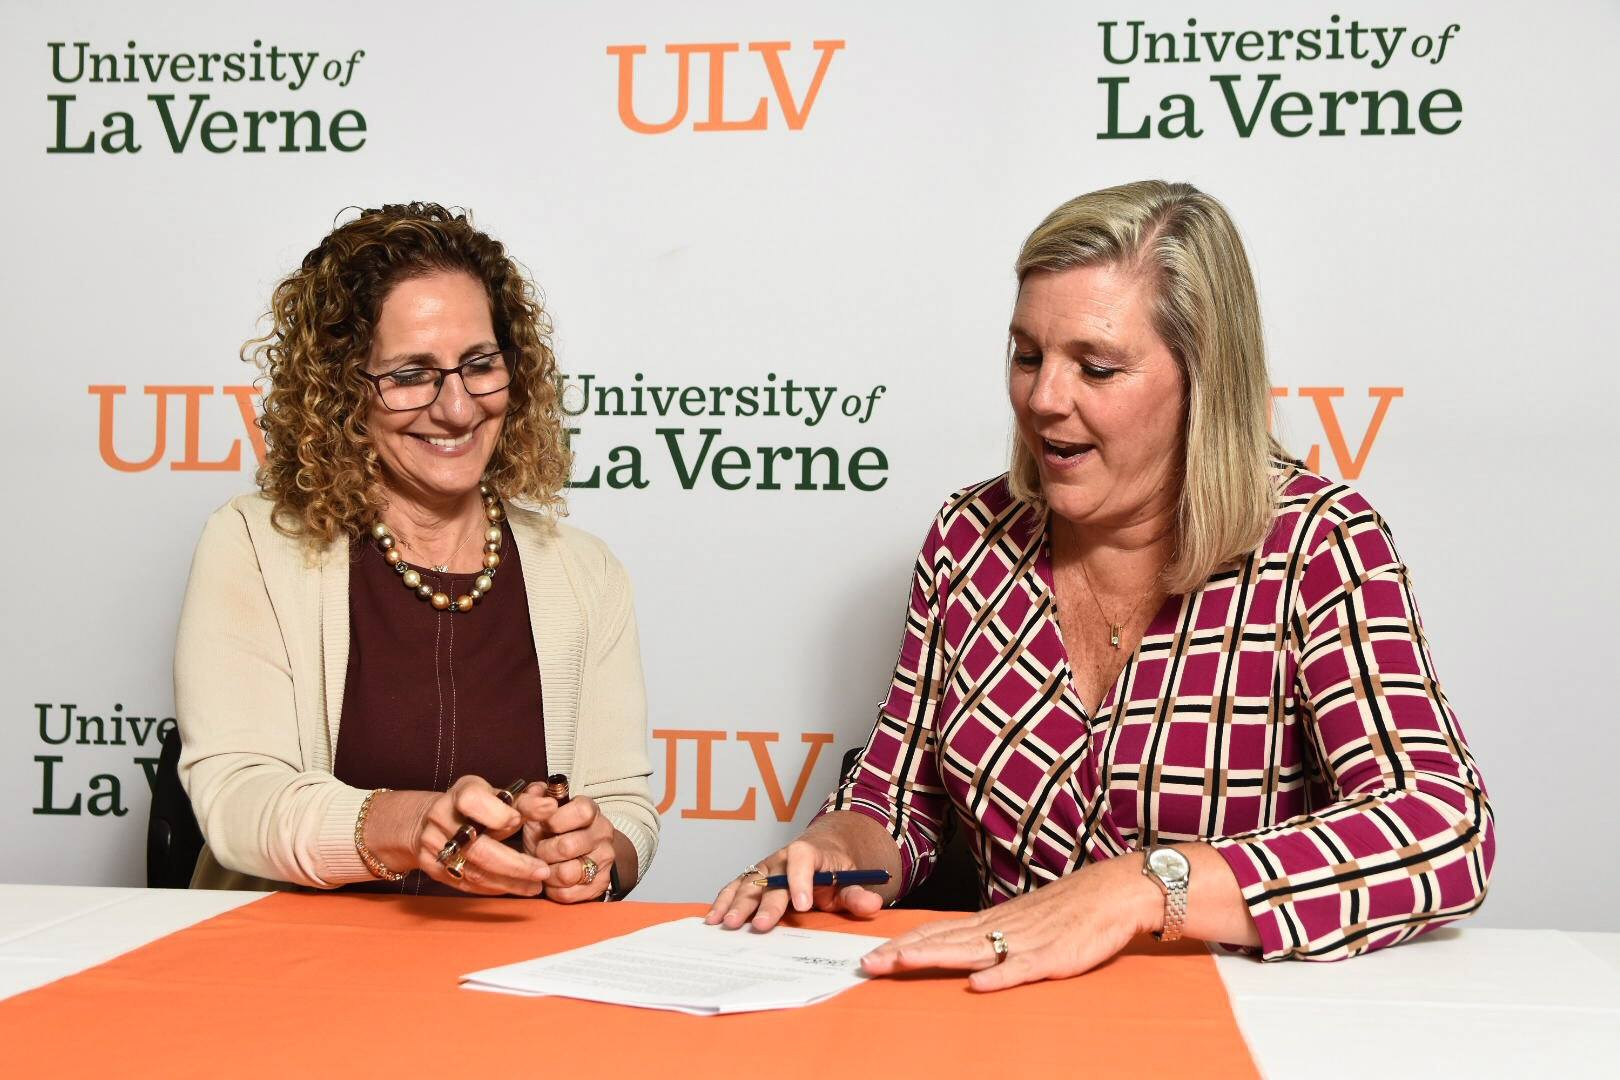 University of La Verne PACE partnership